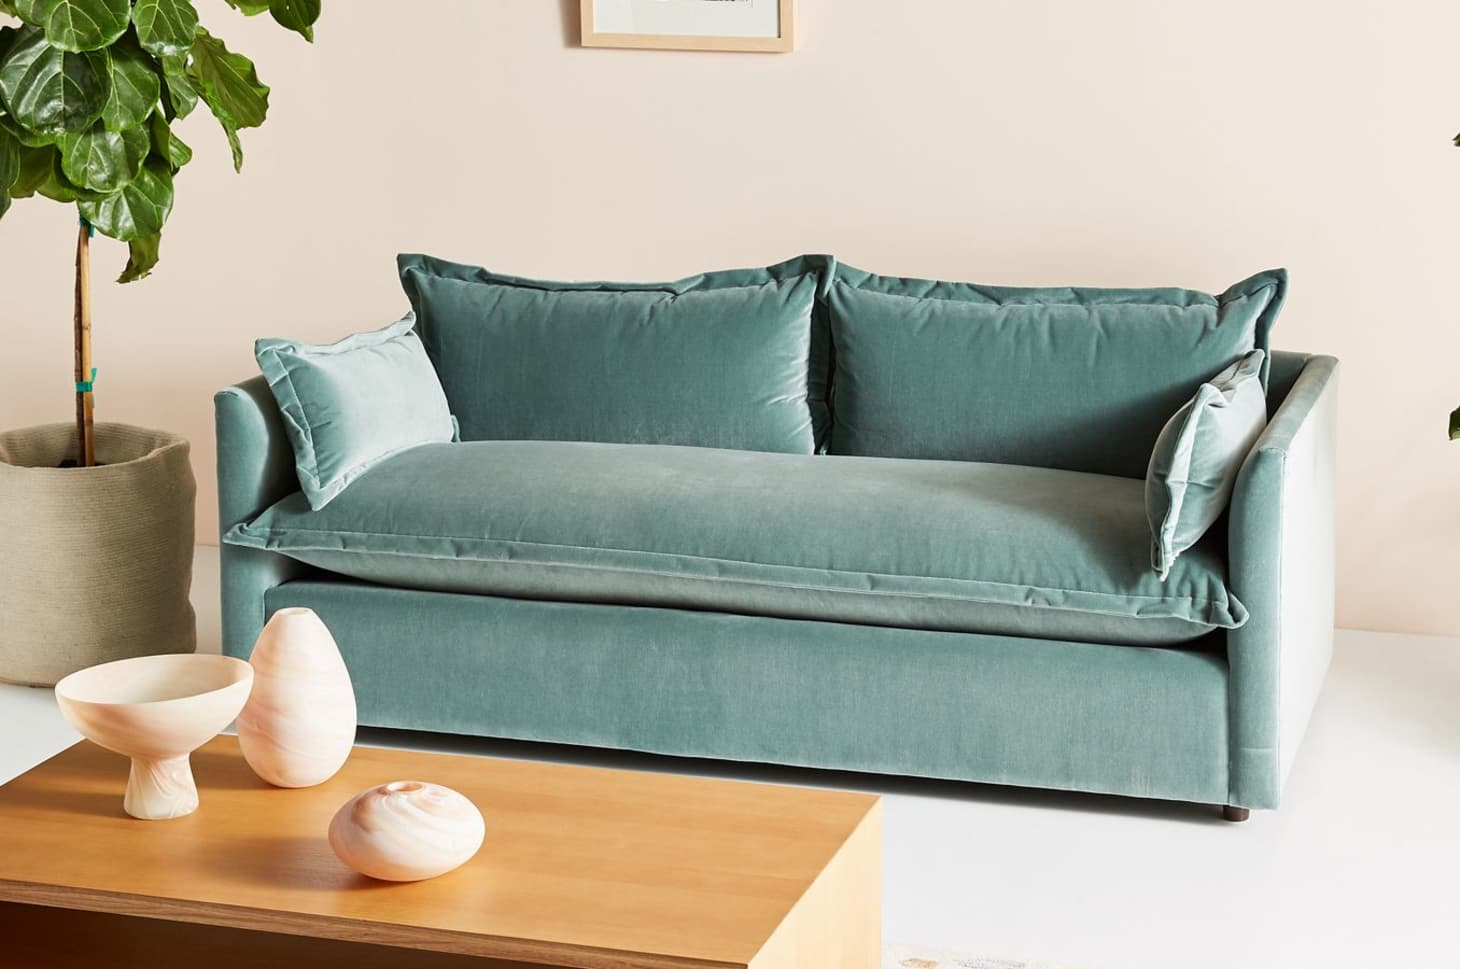 Sensational The Best Sofas For Your Small Space Apartment Therapy Lamtechconsult Wood Chair Design Ideas Lamtechconsultcom